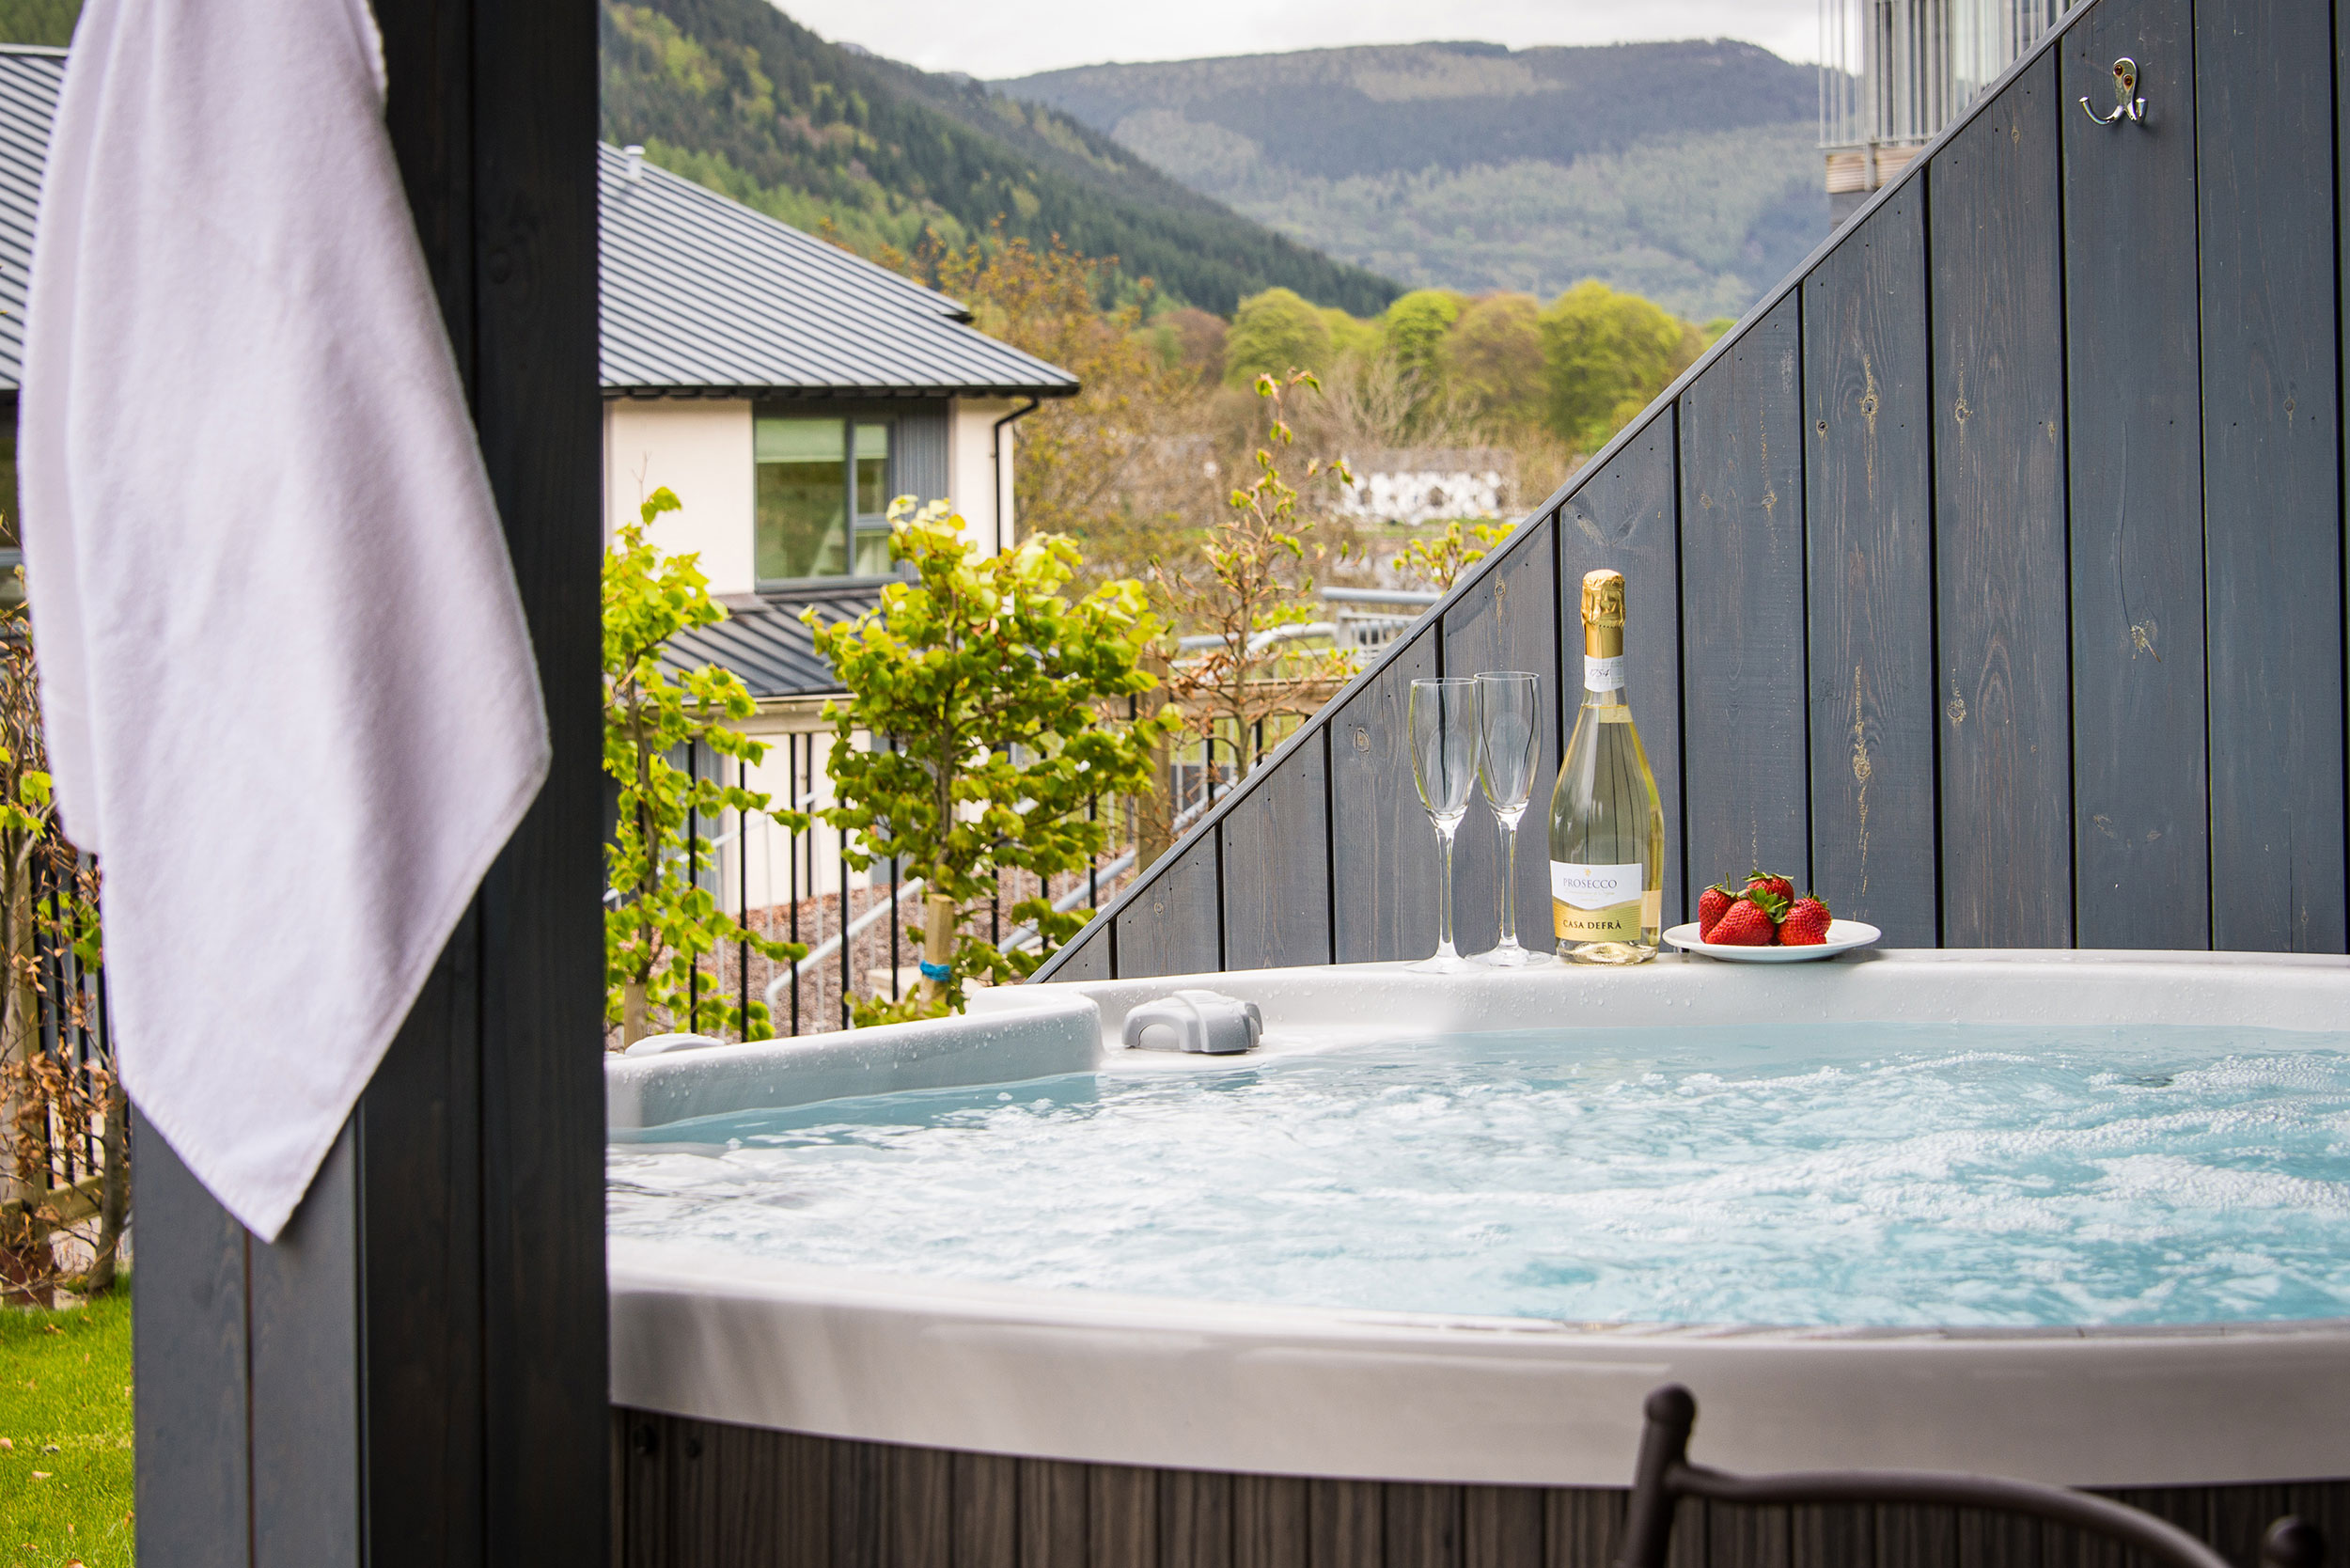 Why Book At Taymouth Marina In 2018?